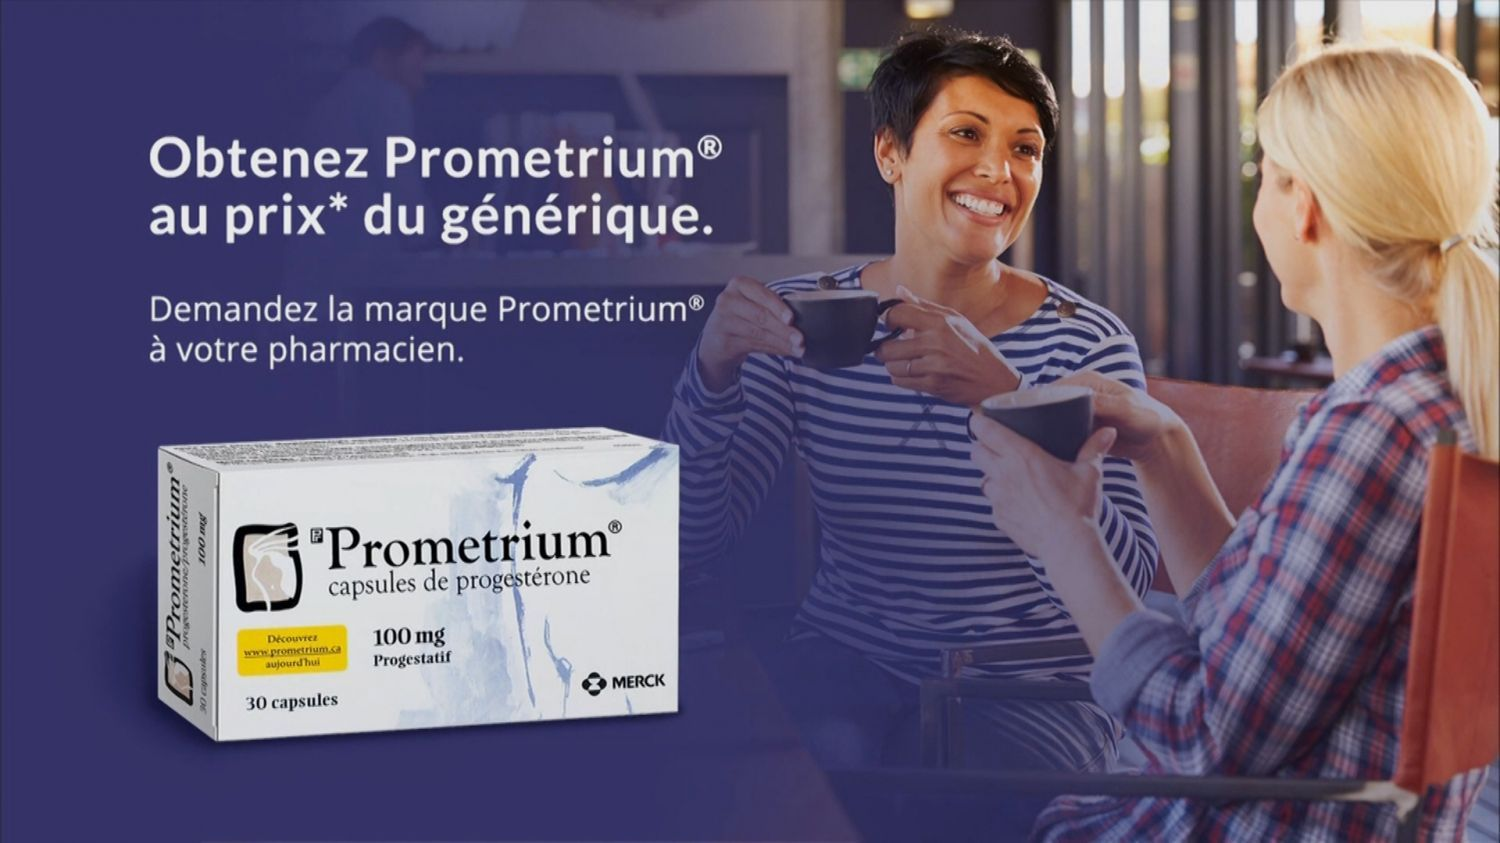 Prometrium---kw---Healthcare_category---ICIRadio-Canada_-_October_14--2020---dtc---Canada---French---TV_commercial---10_seconds.mp4